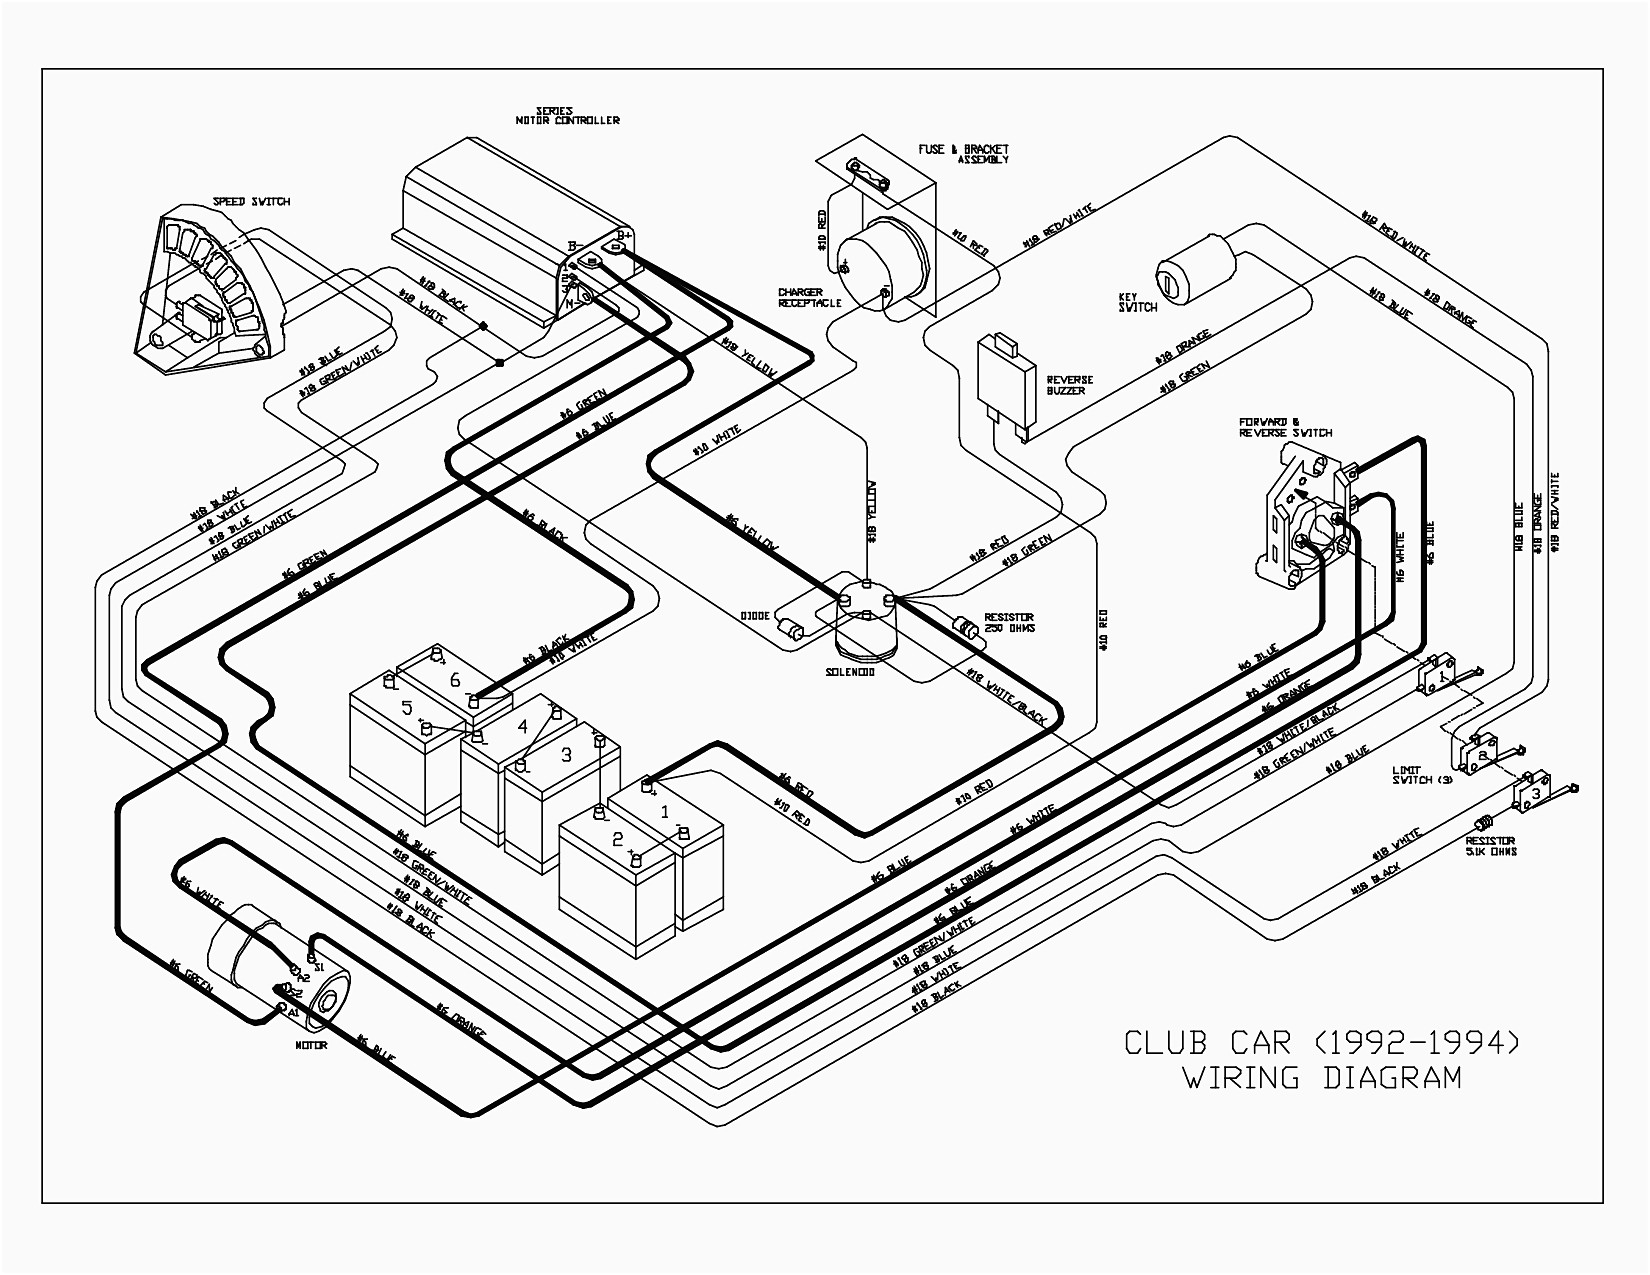 Array parts manual for club car golf cart my wiring diagram rh detoxicrecenze